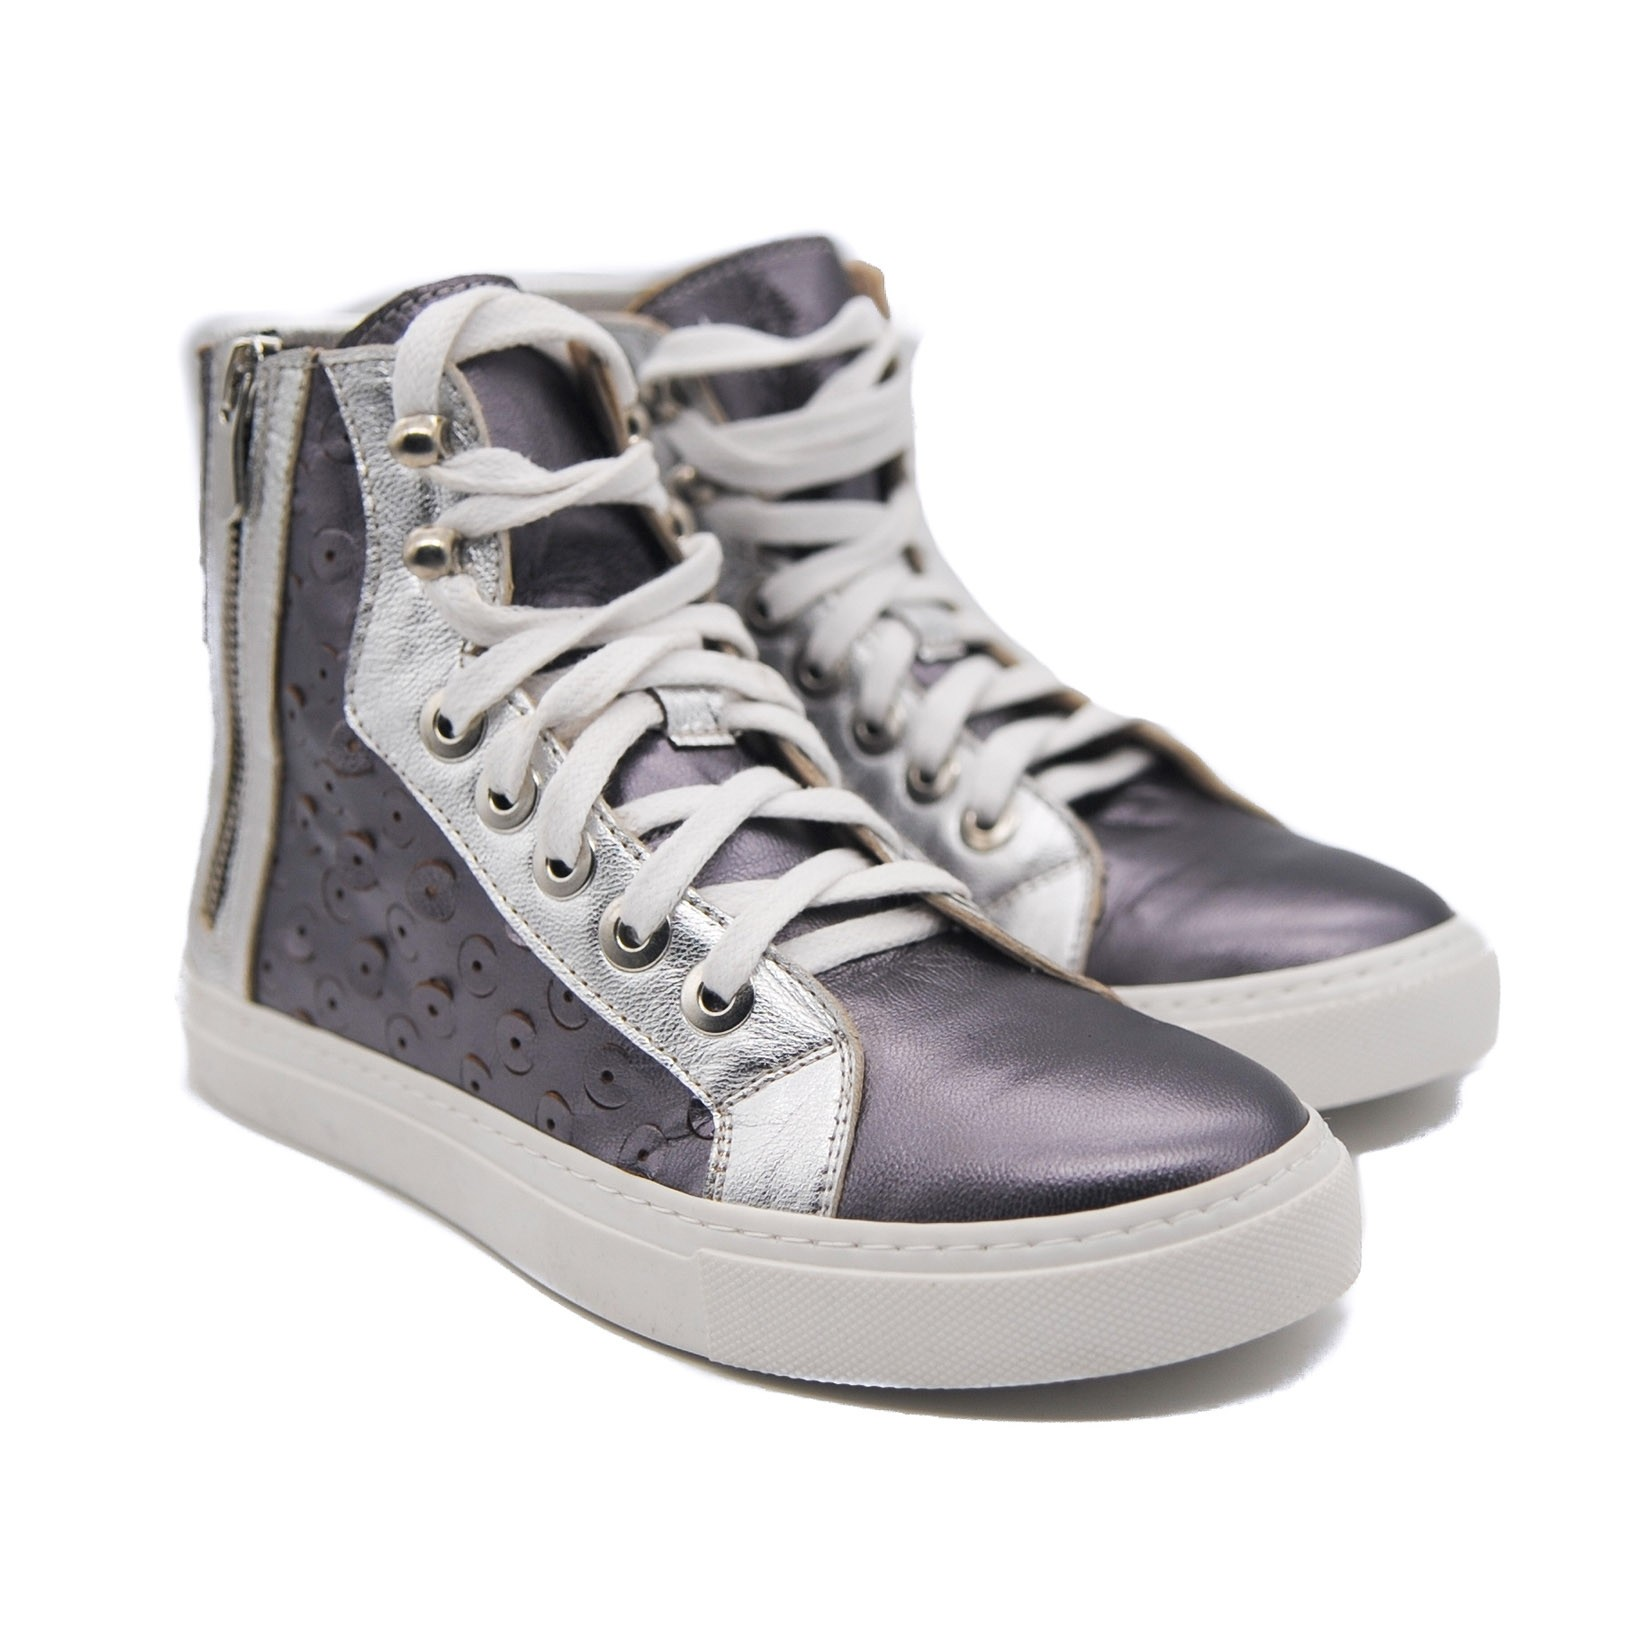 Pegia Ladies' Flat Lace Up Metallic Grey and Silver High Skater Shoes